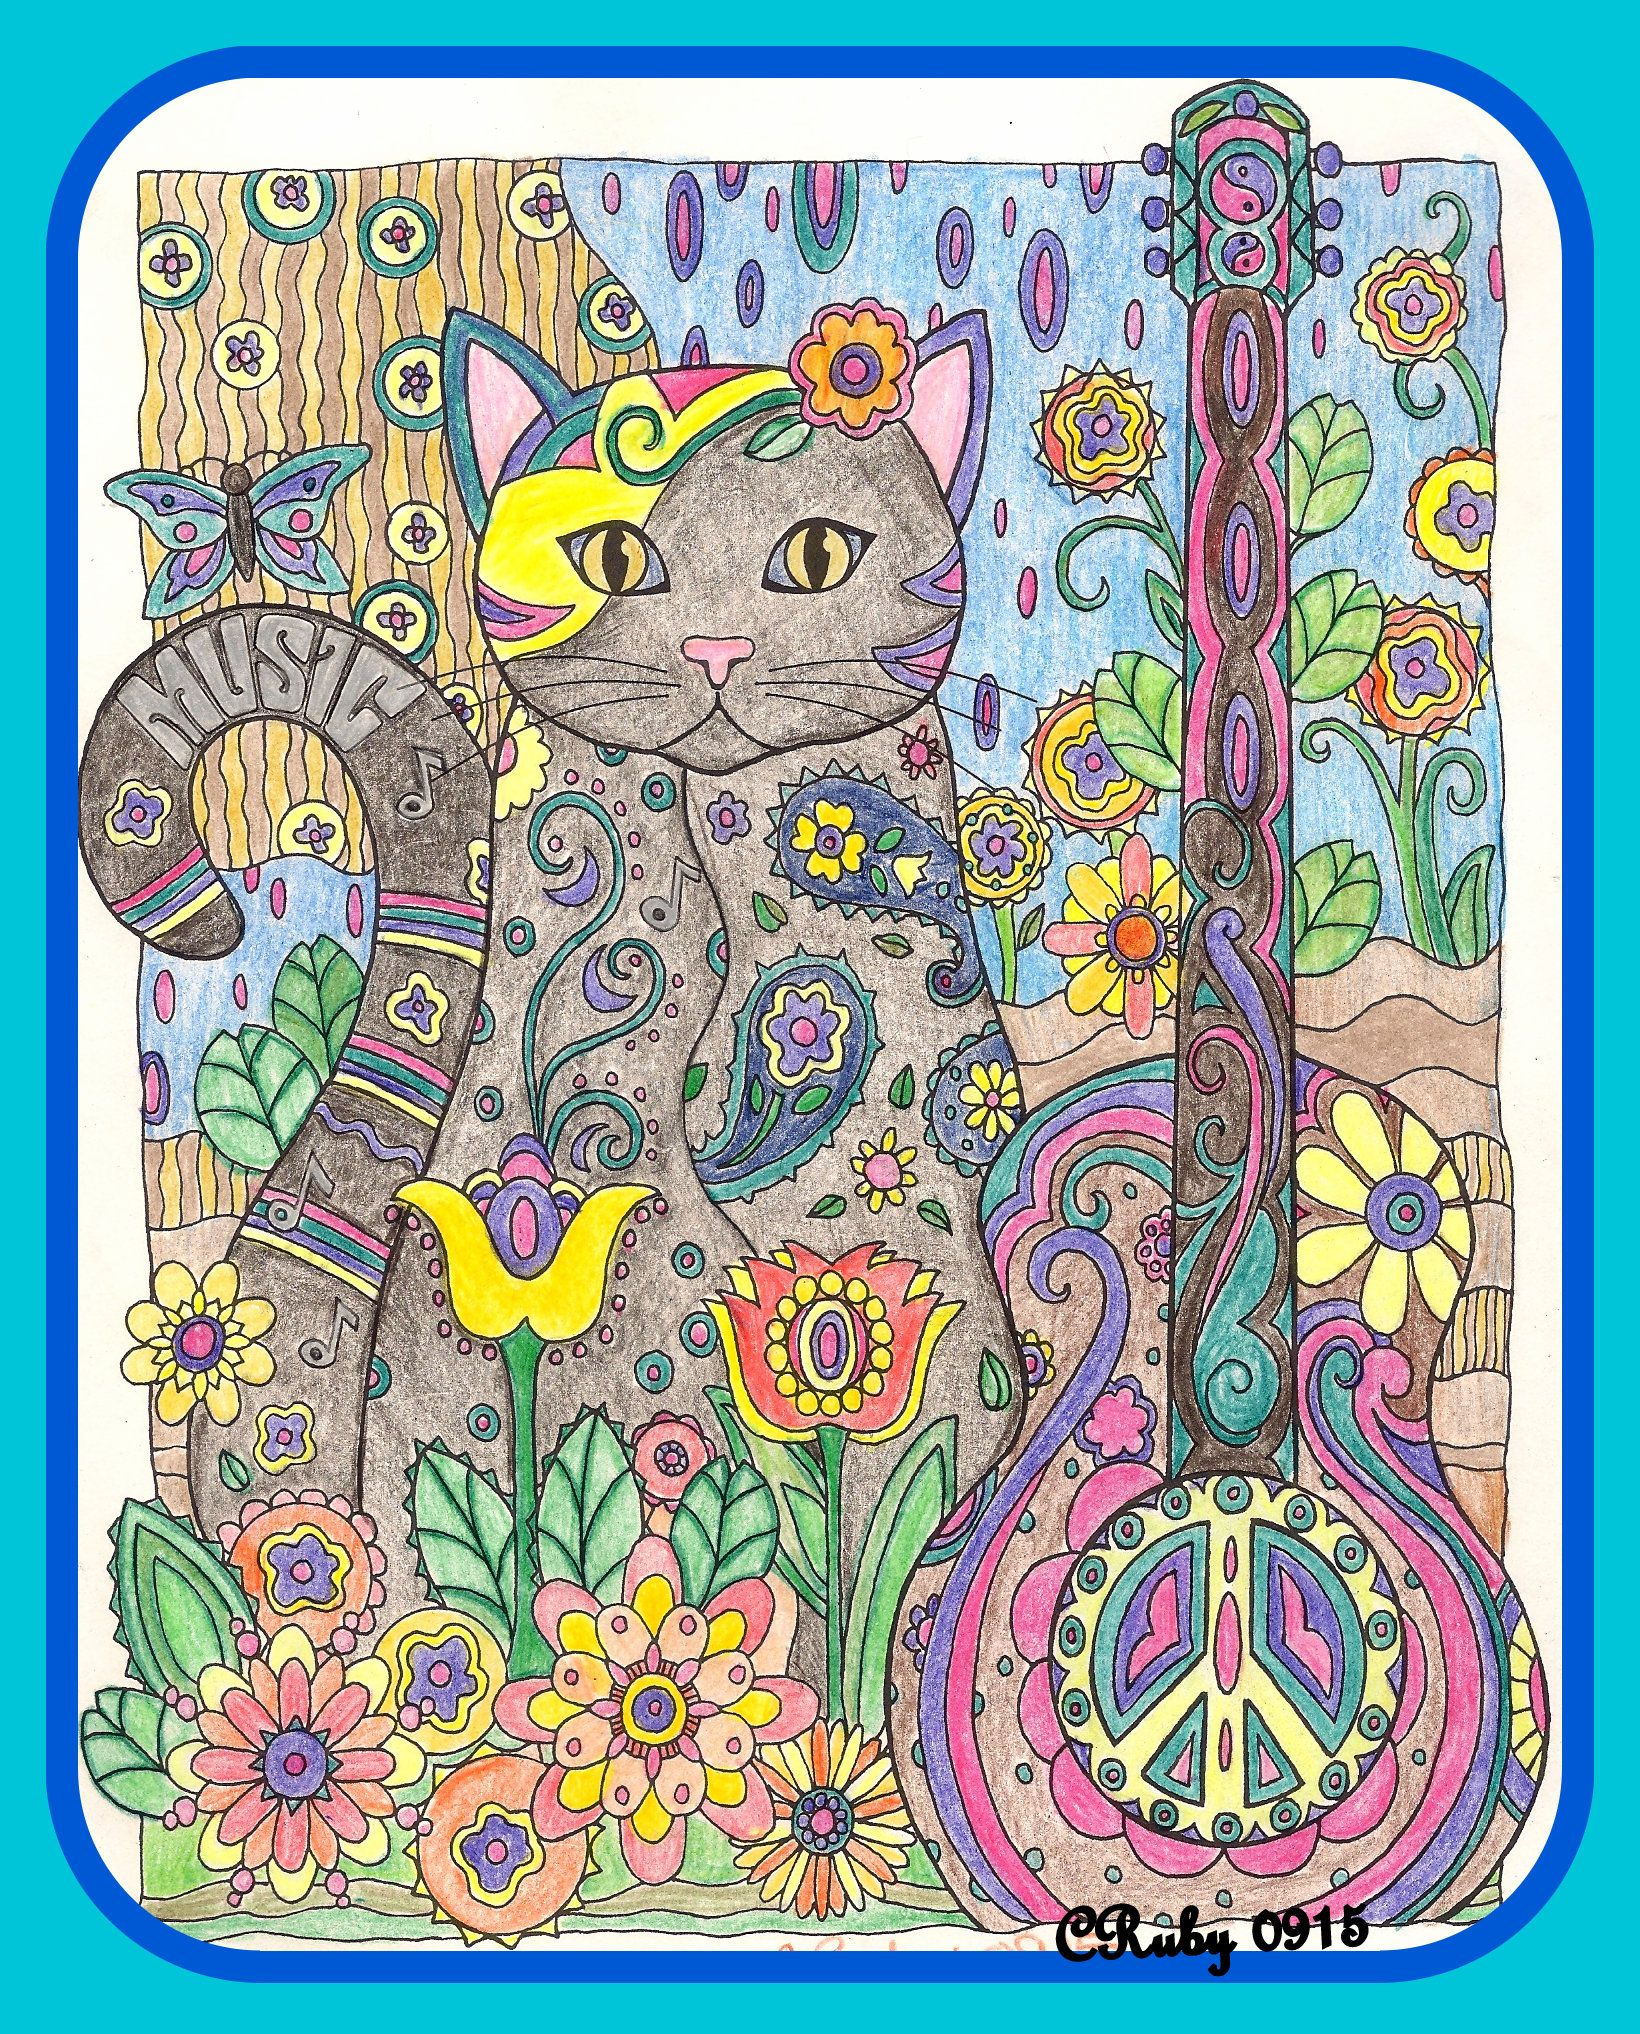 Color pencil art music cat by cruby 0915